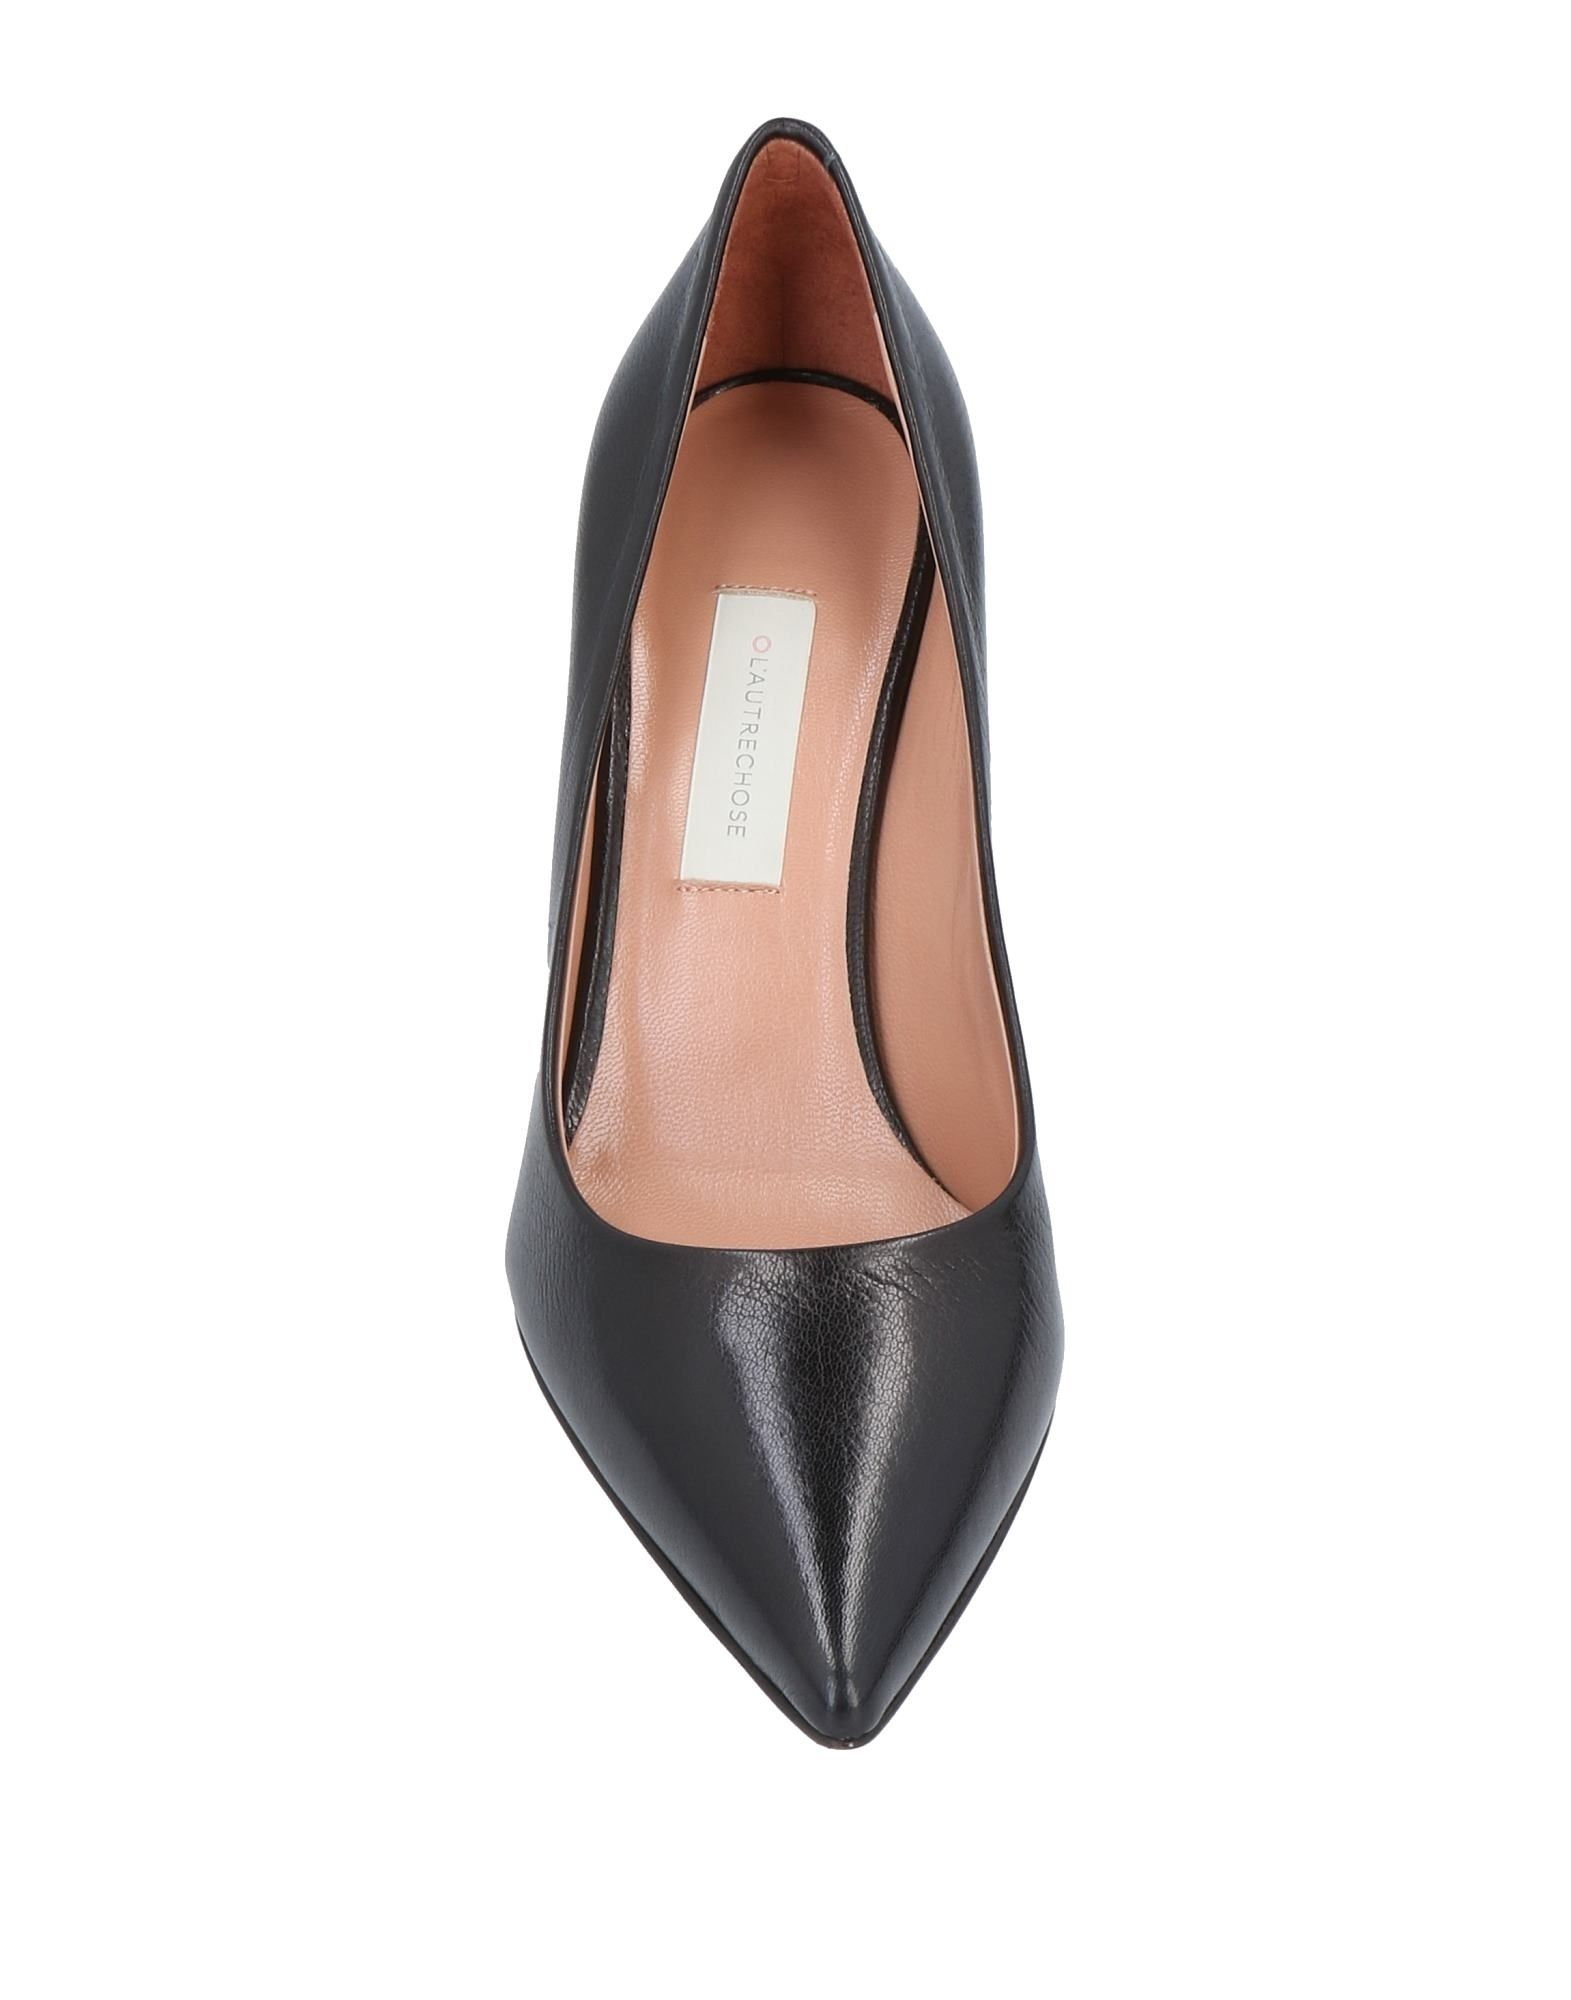 Stilvolle billige Schuhe L' Autre Chose Pumps Damen  11485082IL